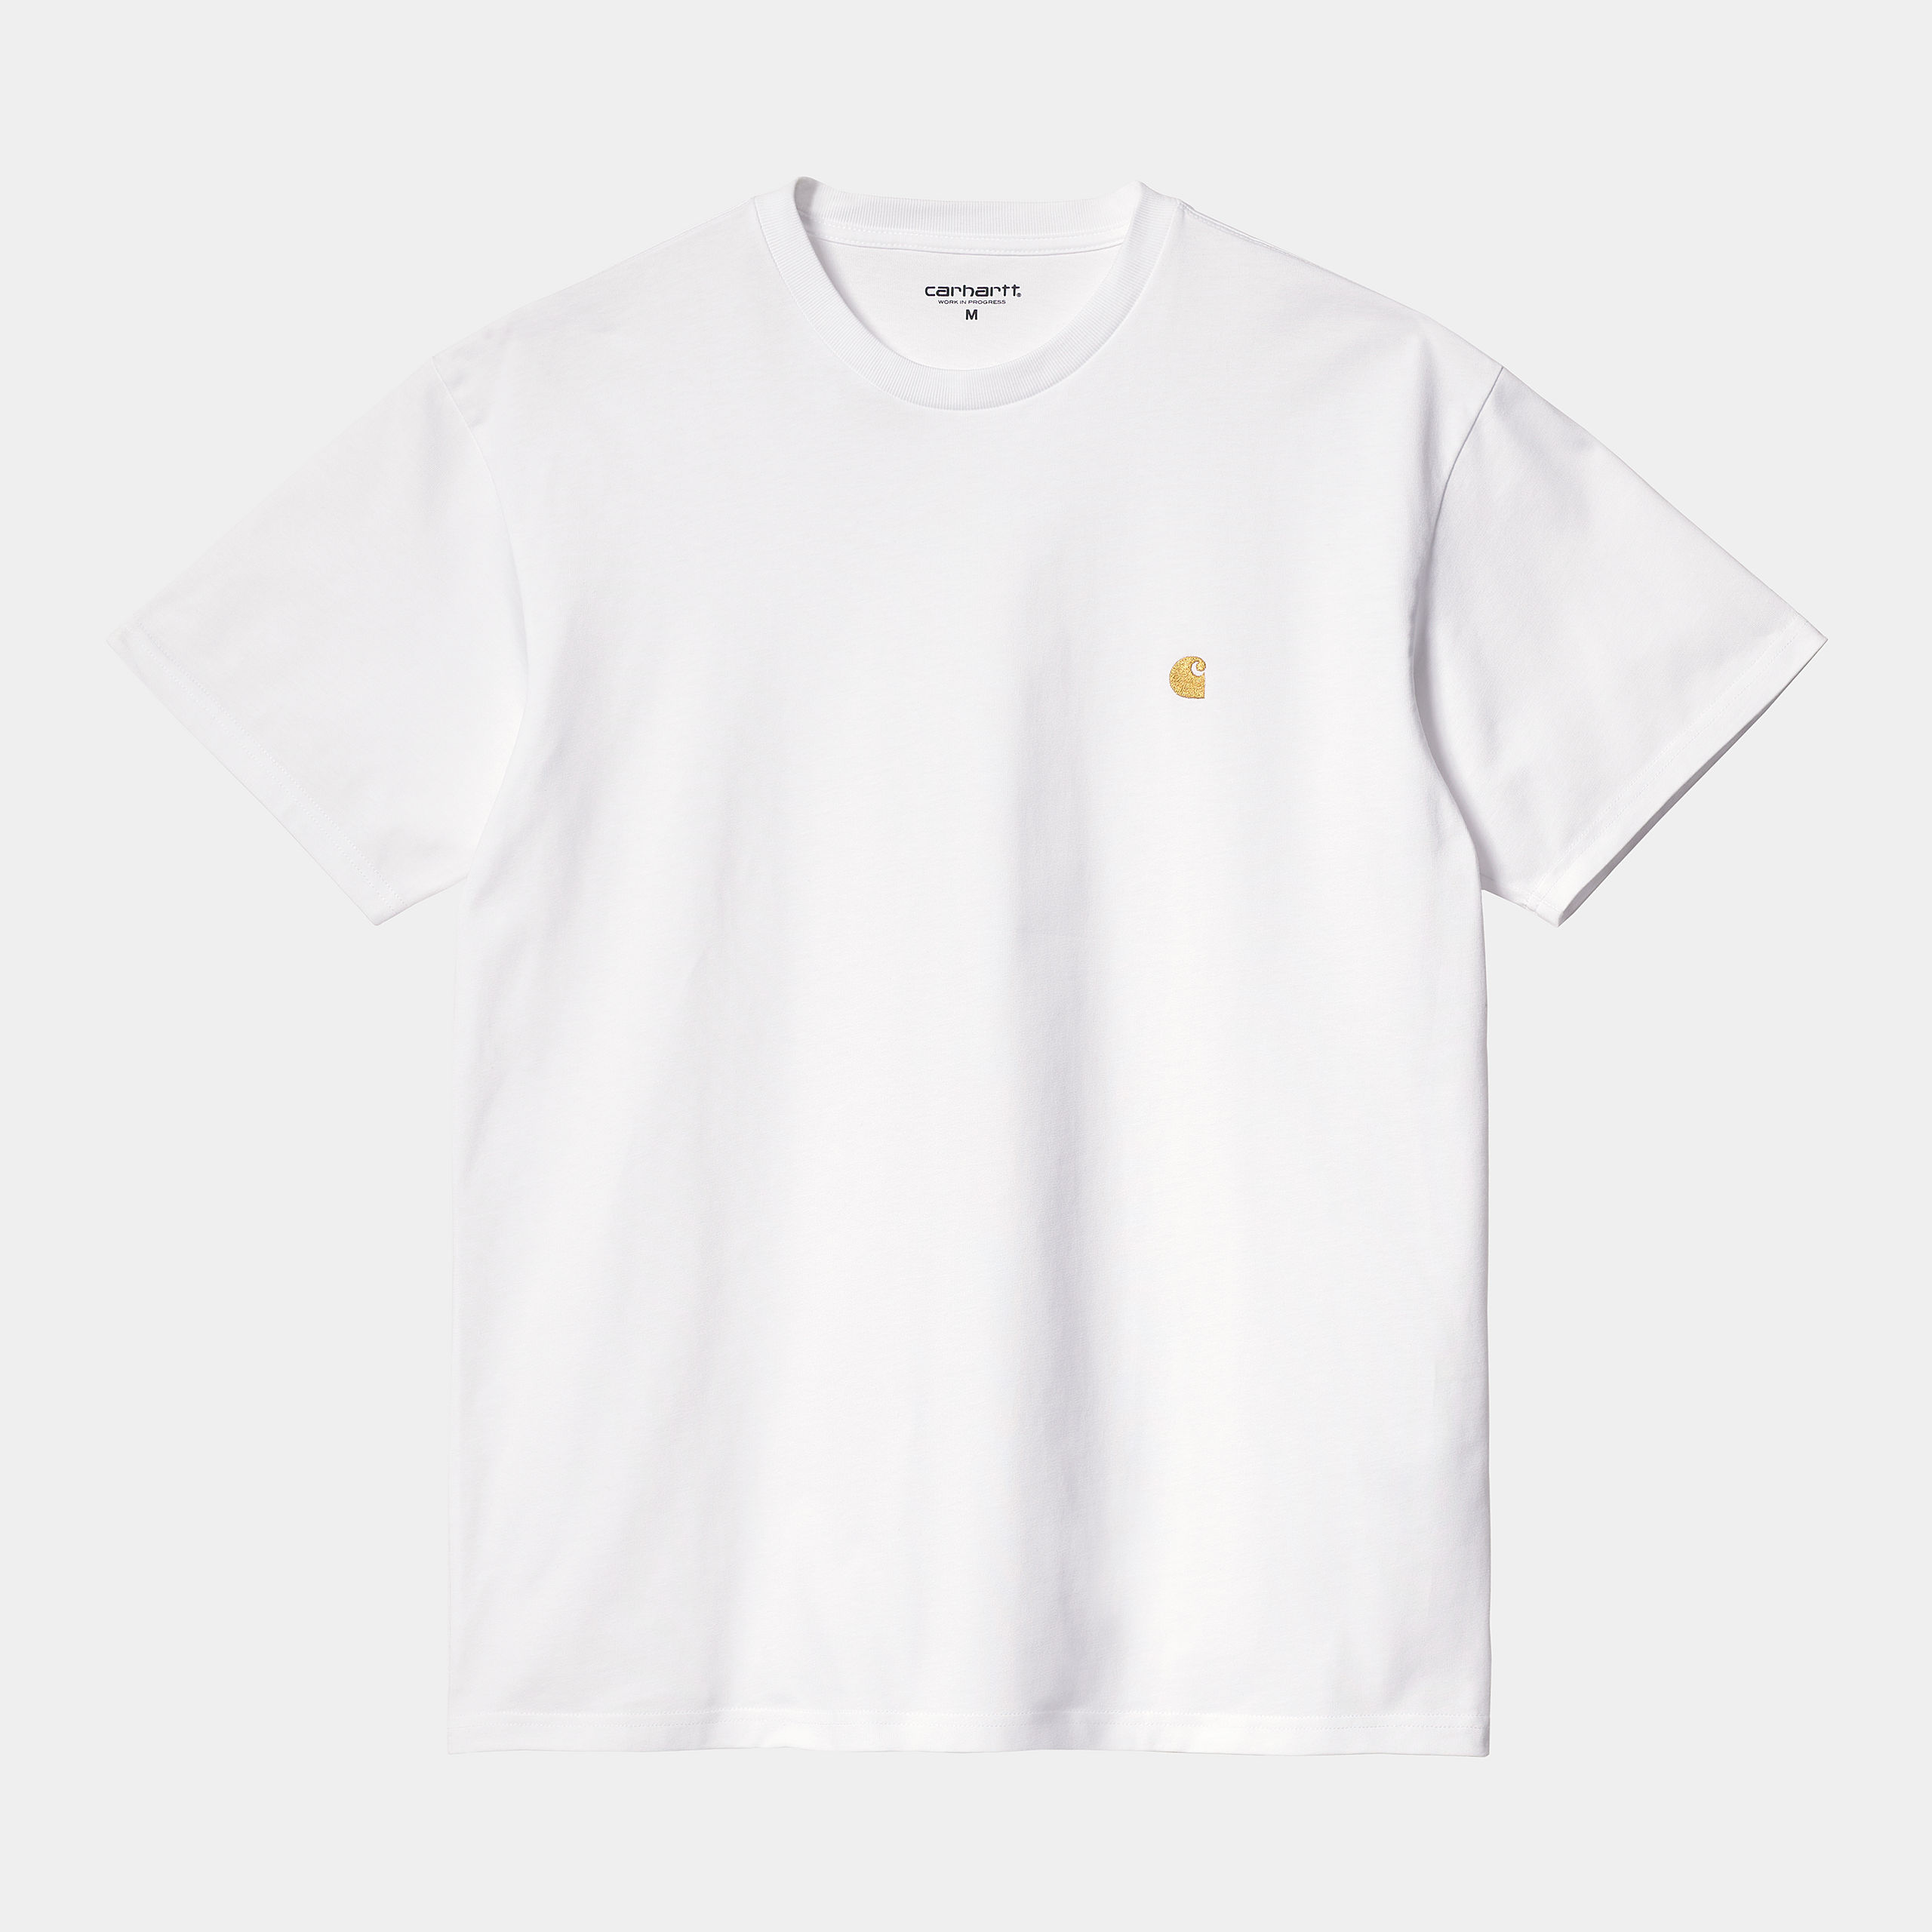 Carhartt WIP - CHASE T-SHIRT - White/Gold